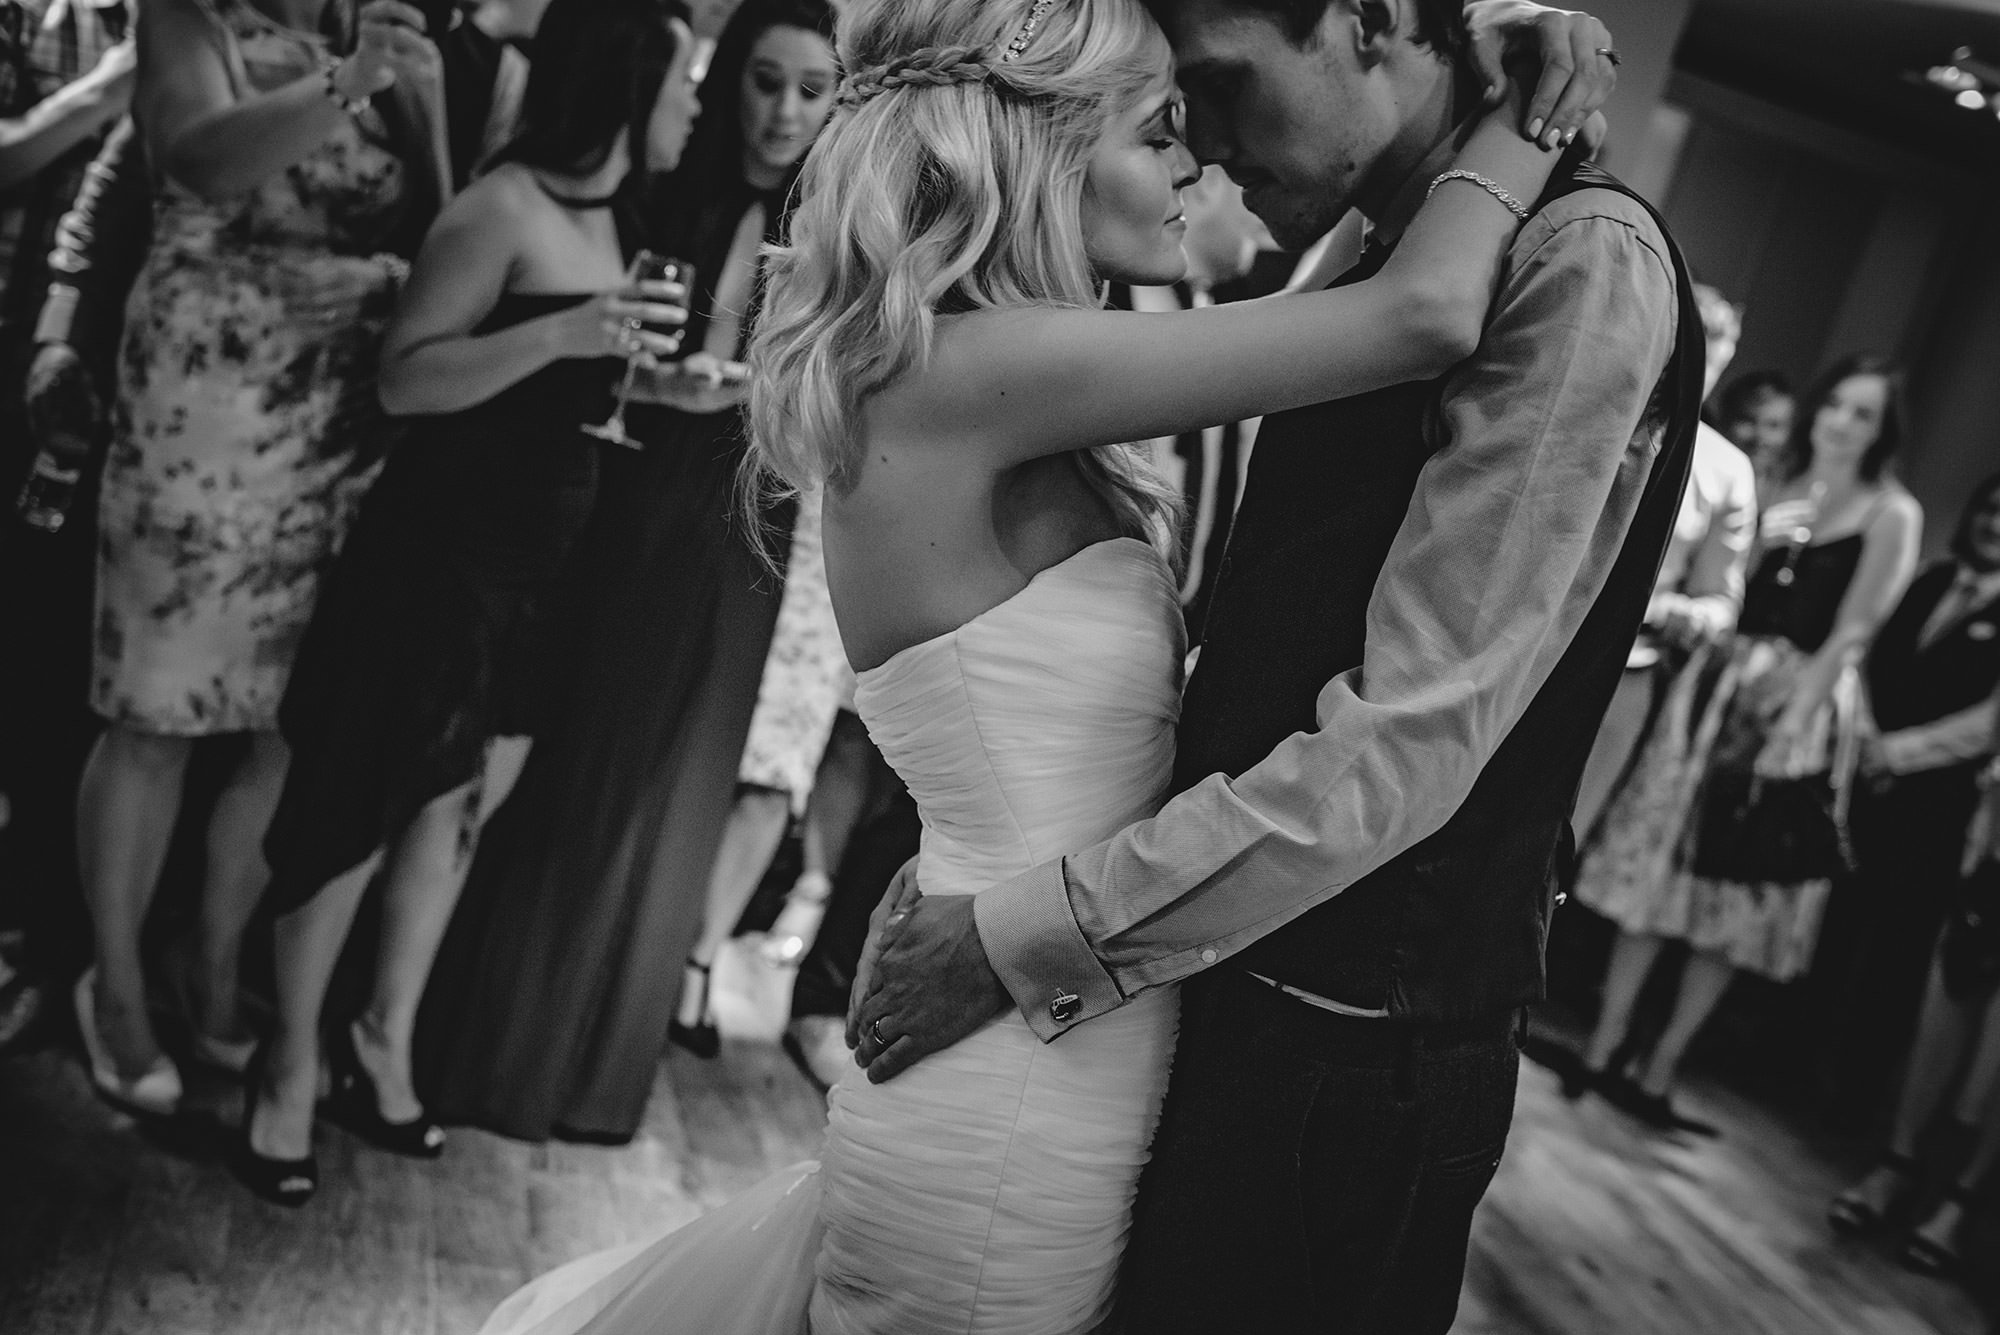 romantic first dance photo in black and white